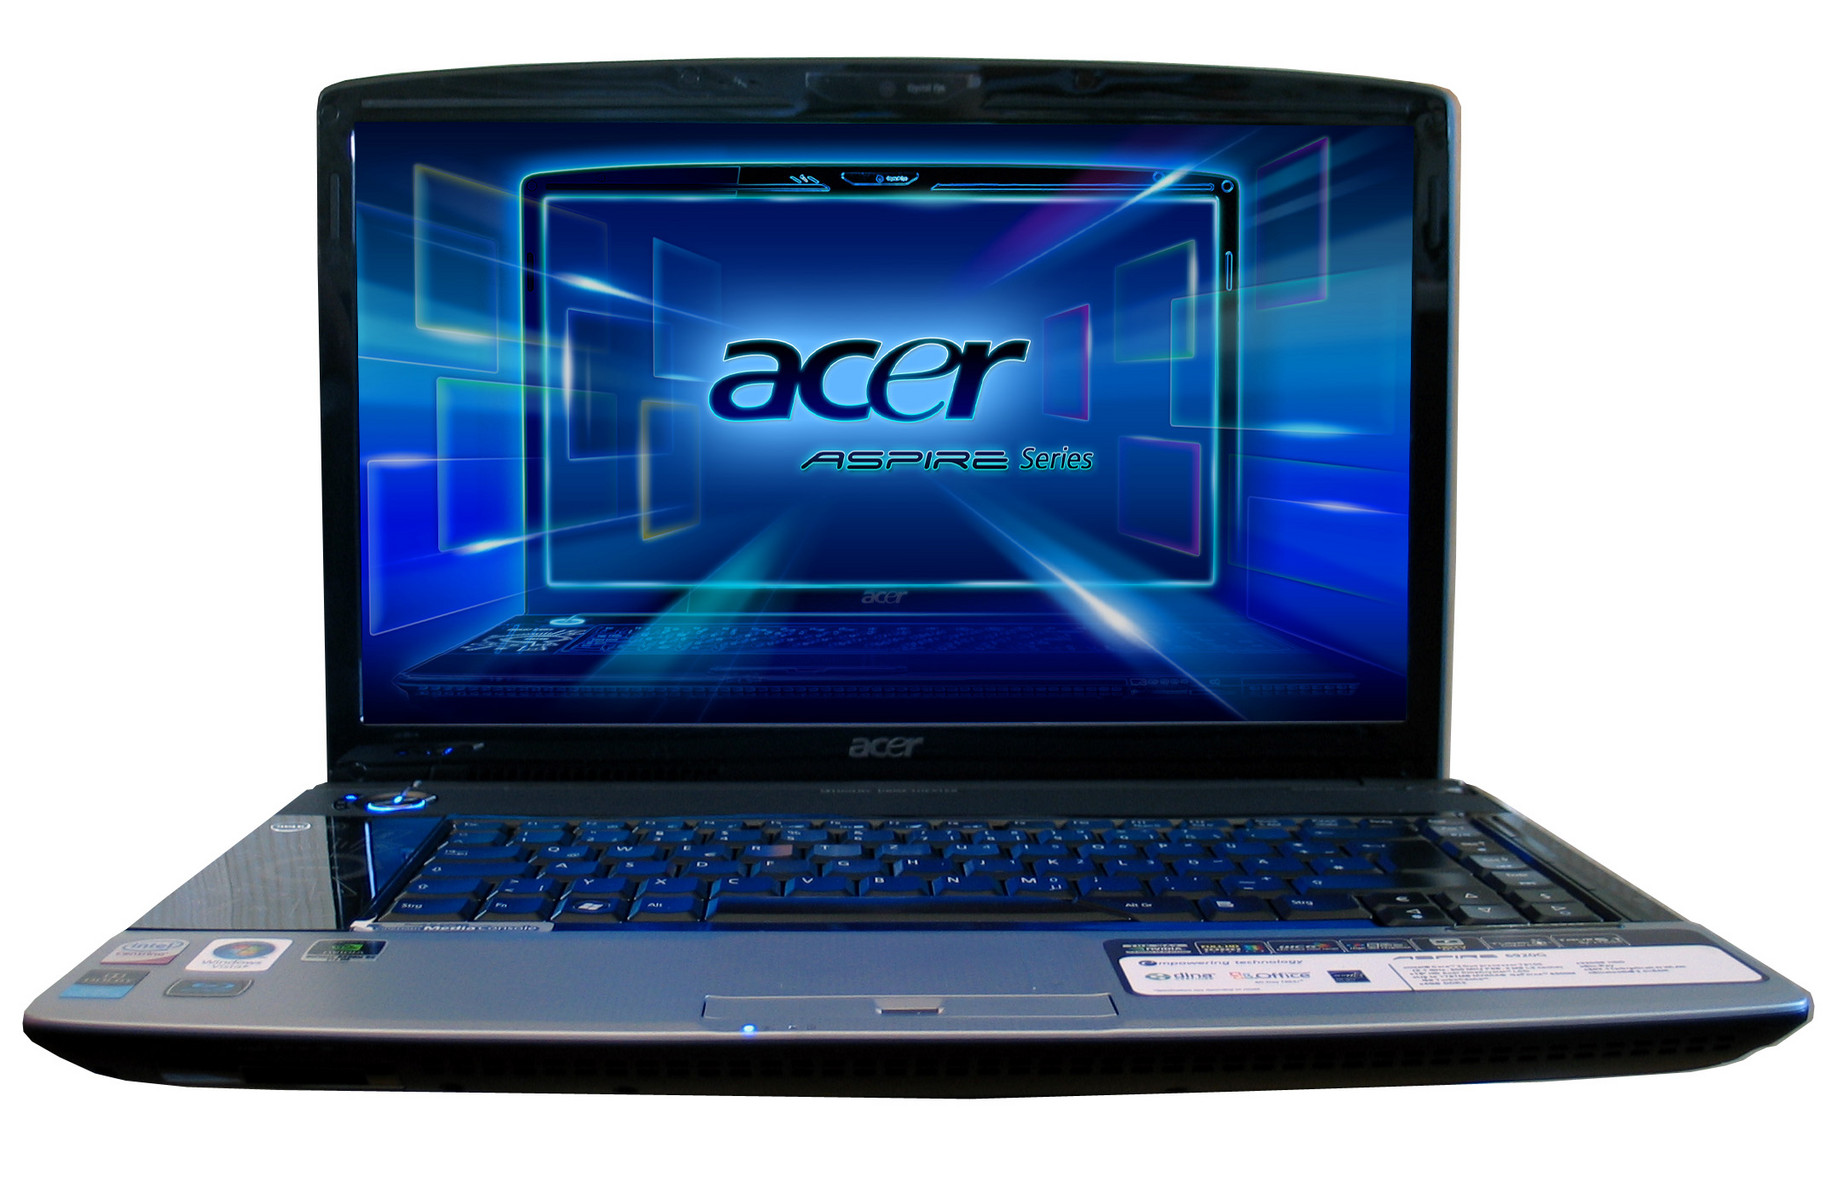 Acer Aspire 6920G Realtek Audio Drivers Download Free